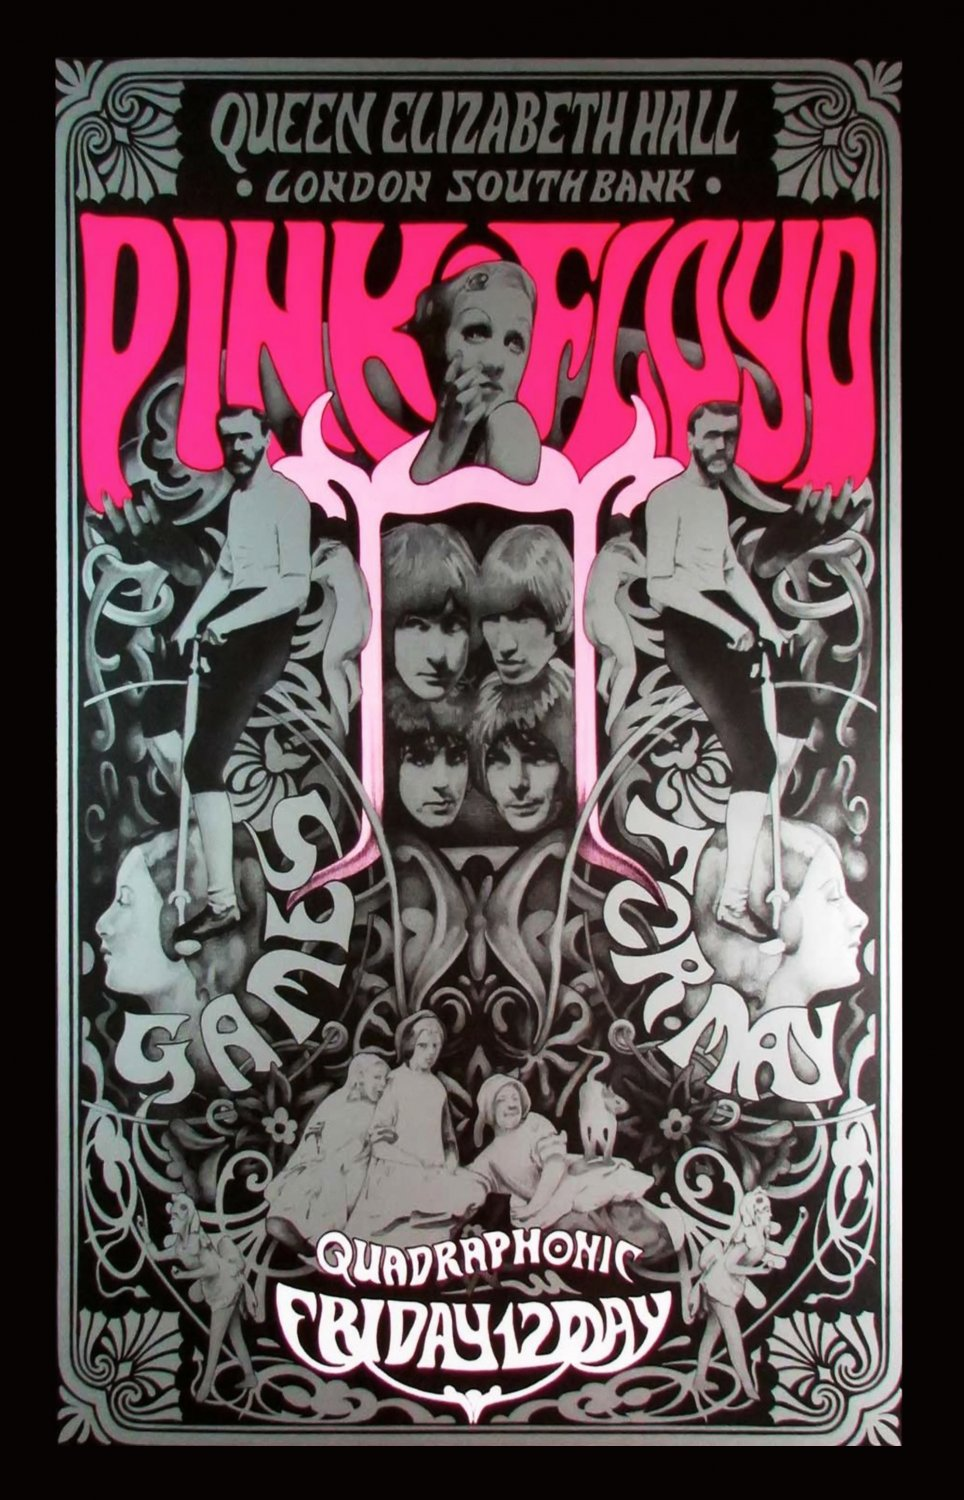 "Pink Floyd Queen Elizabeth Hall Concert Tour 13""x19"" (32cm/49cm) Polyester Fabric Poster"